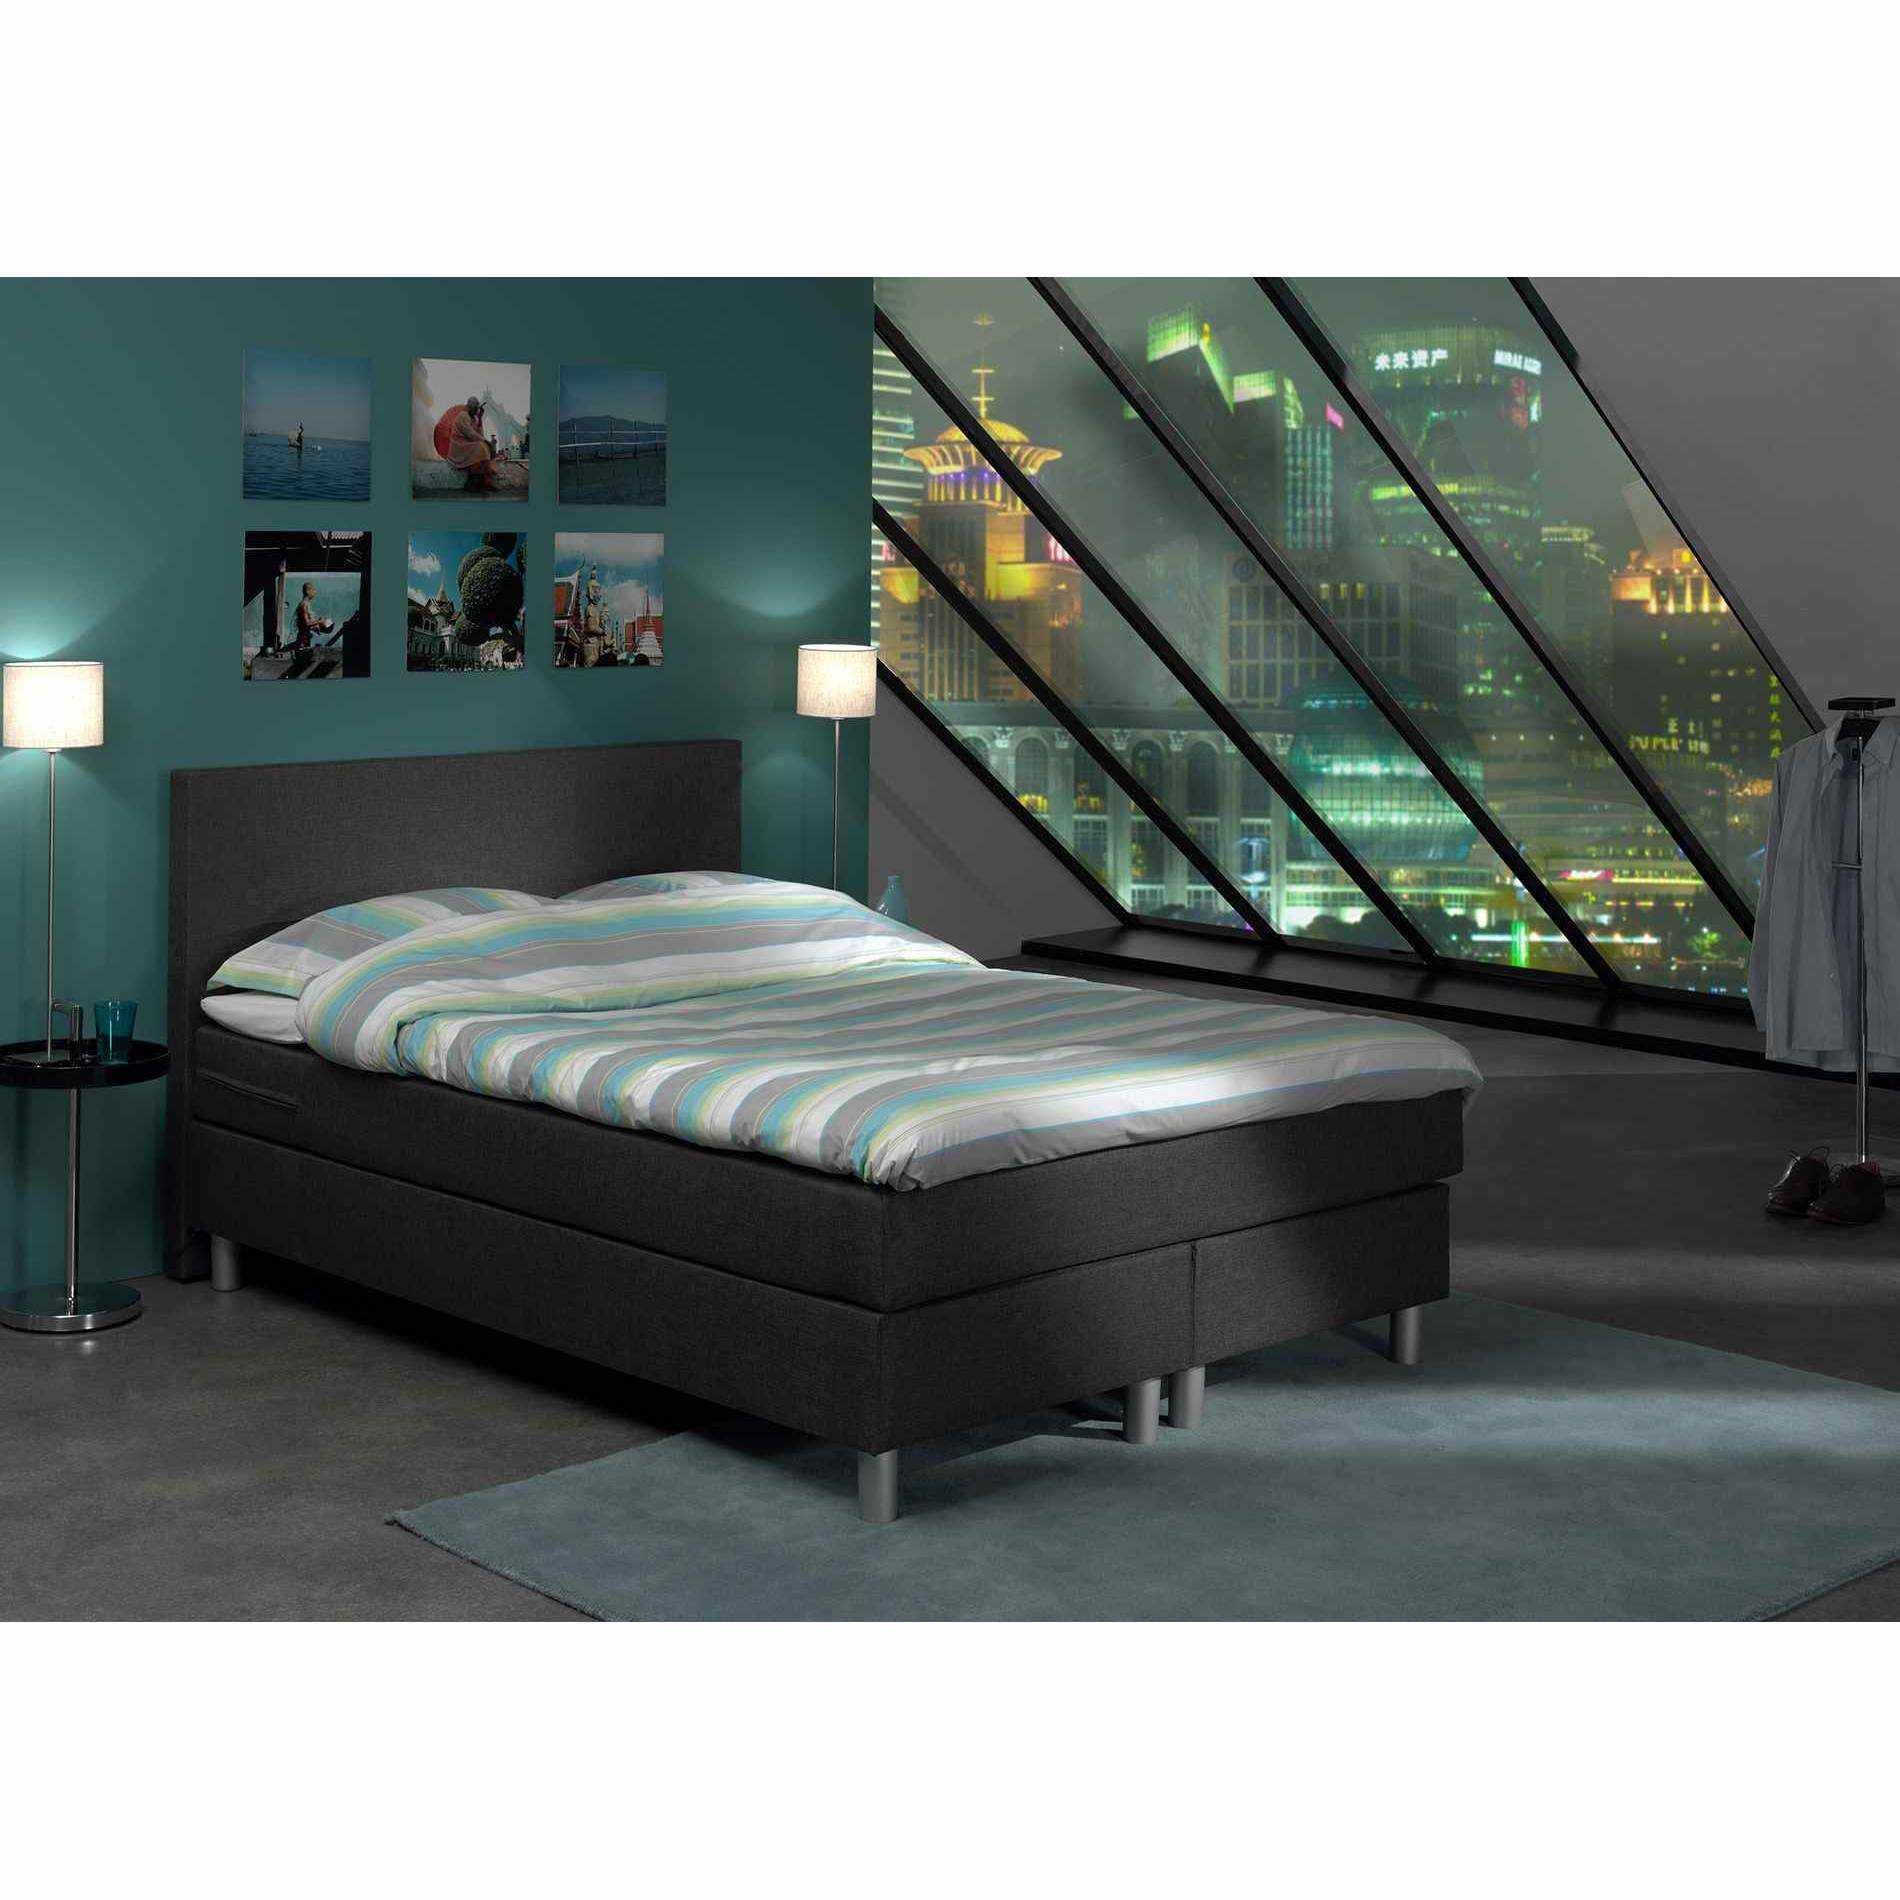 deco in paris 7 lit complet tete de lit matelas surmatelas 160 x 200 cm boxspring boxspring. Black Bedroom Furniture Sets. Home Design Ideas